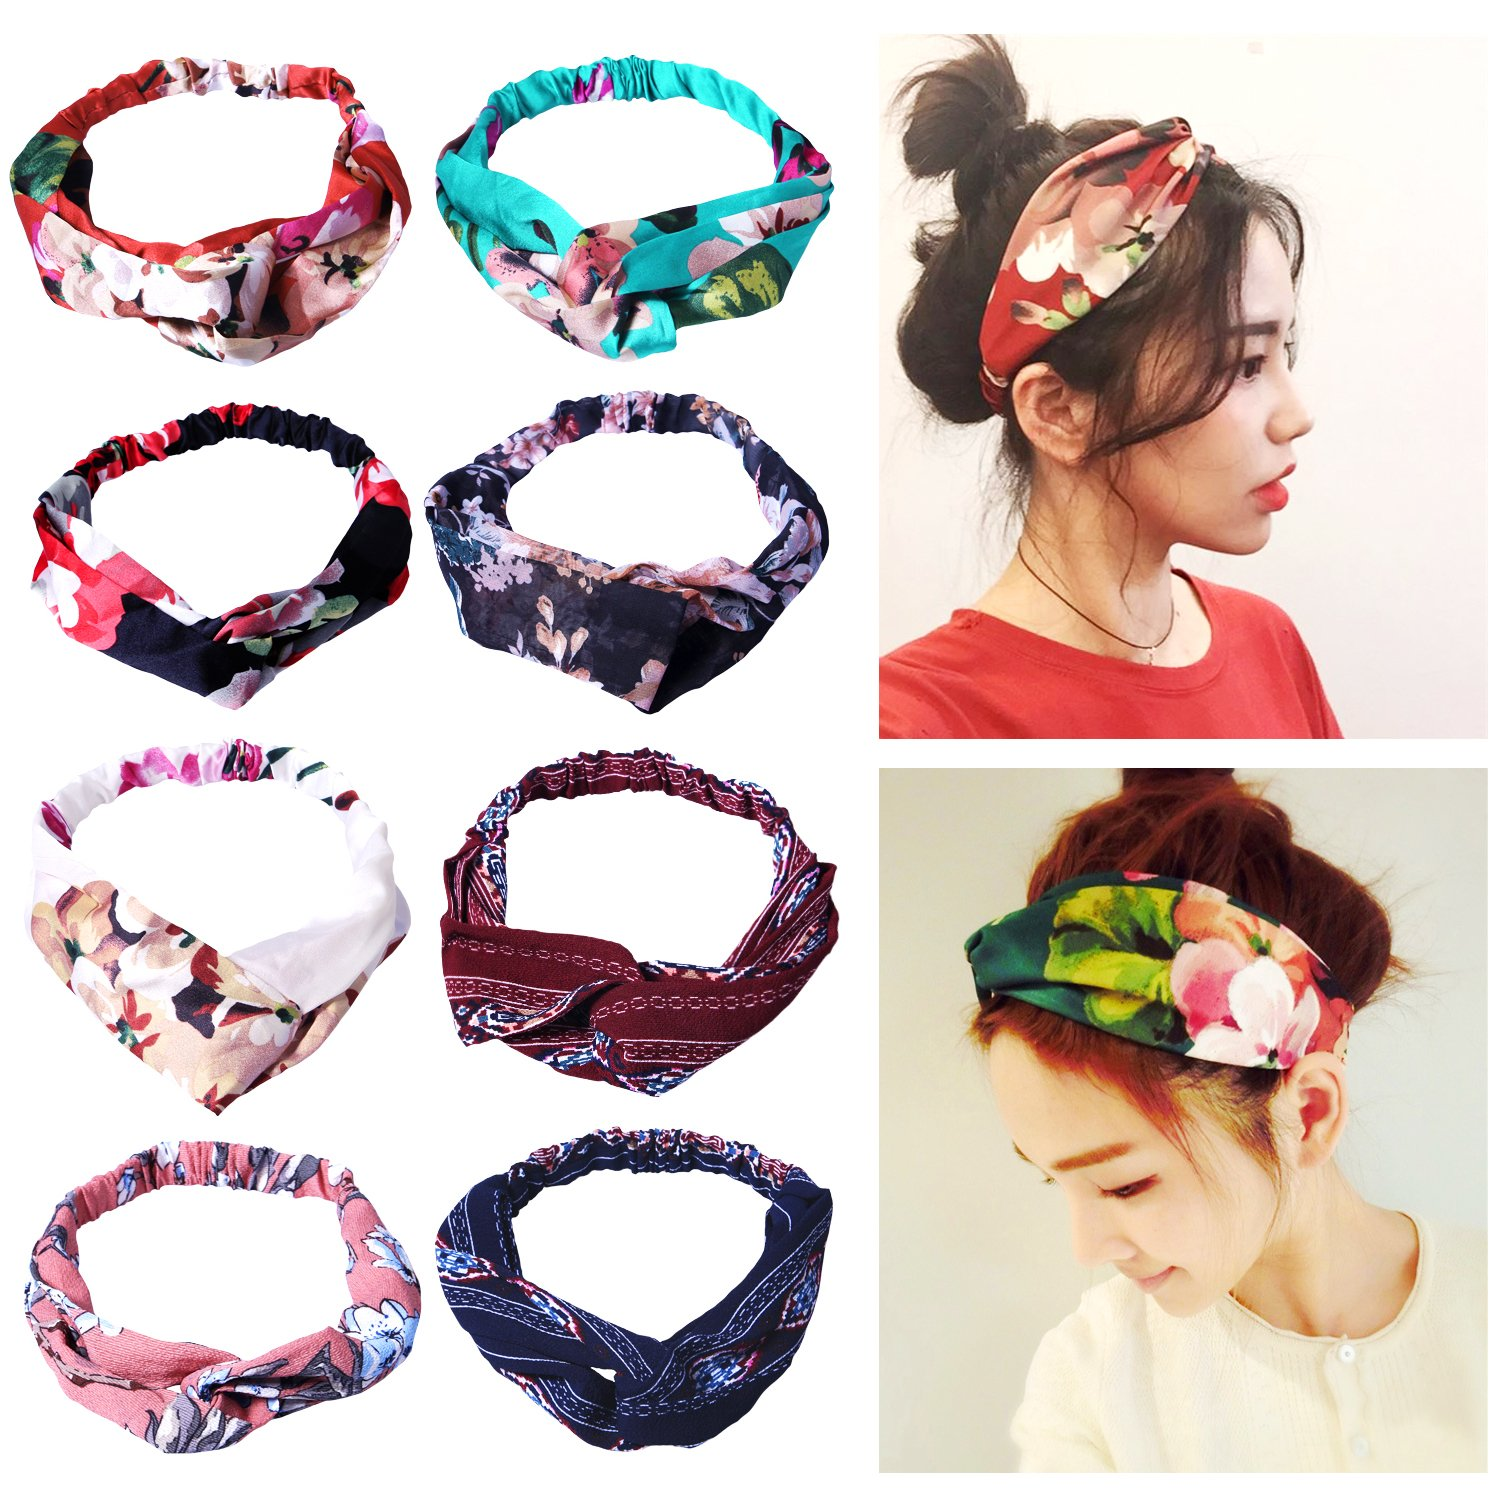 Women Hair Accessories Hair Band Headband Sexy Flower Lace Bunny Ears Hairband Girls Female Party Prom Headwear Headdress Elegant And Graceful Girl's Accessories Girl's Hair Accessories